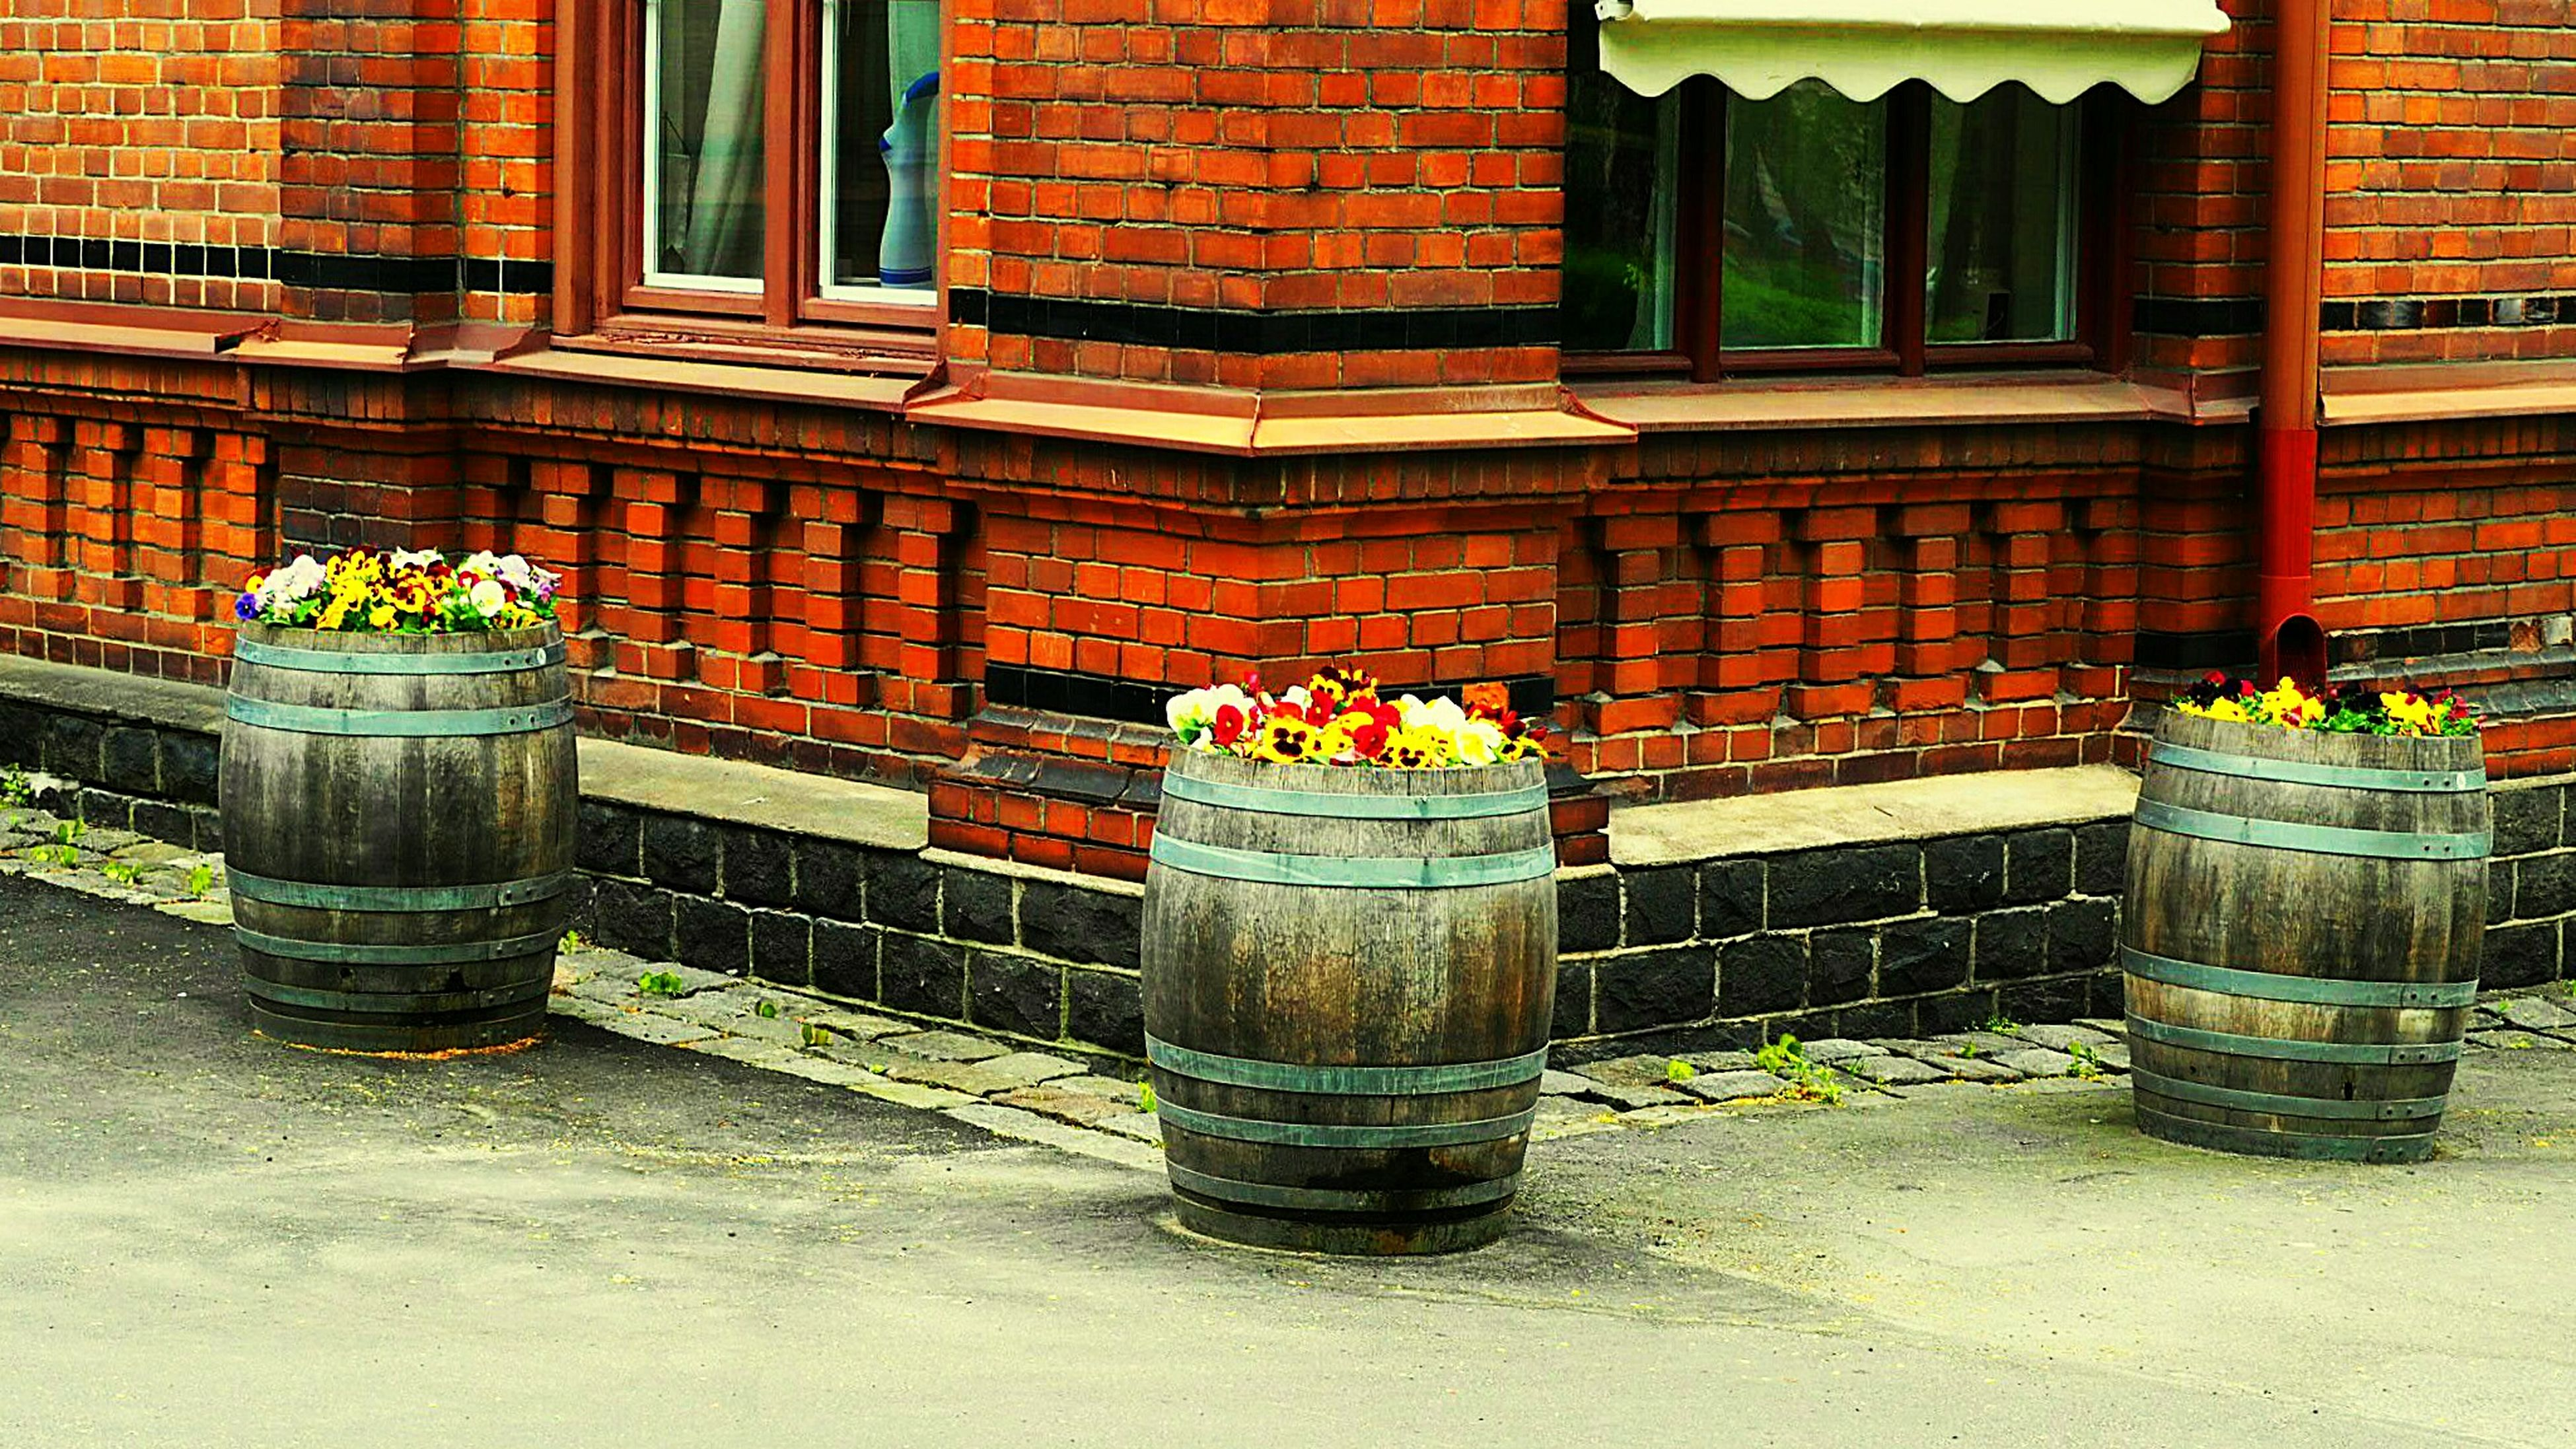 building exterior, architecture, built structure, brick wall, window, house, potted plant, plant, outdoors, old, day, wall - building feature, flower pot, outside, residential structure, no people, front or back yard, residential building, building, growth